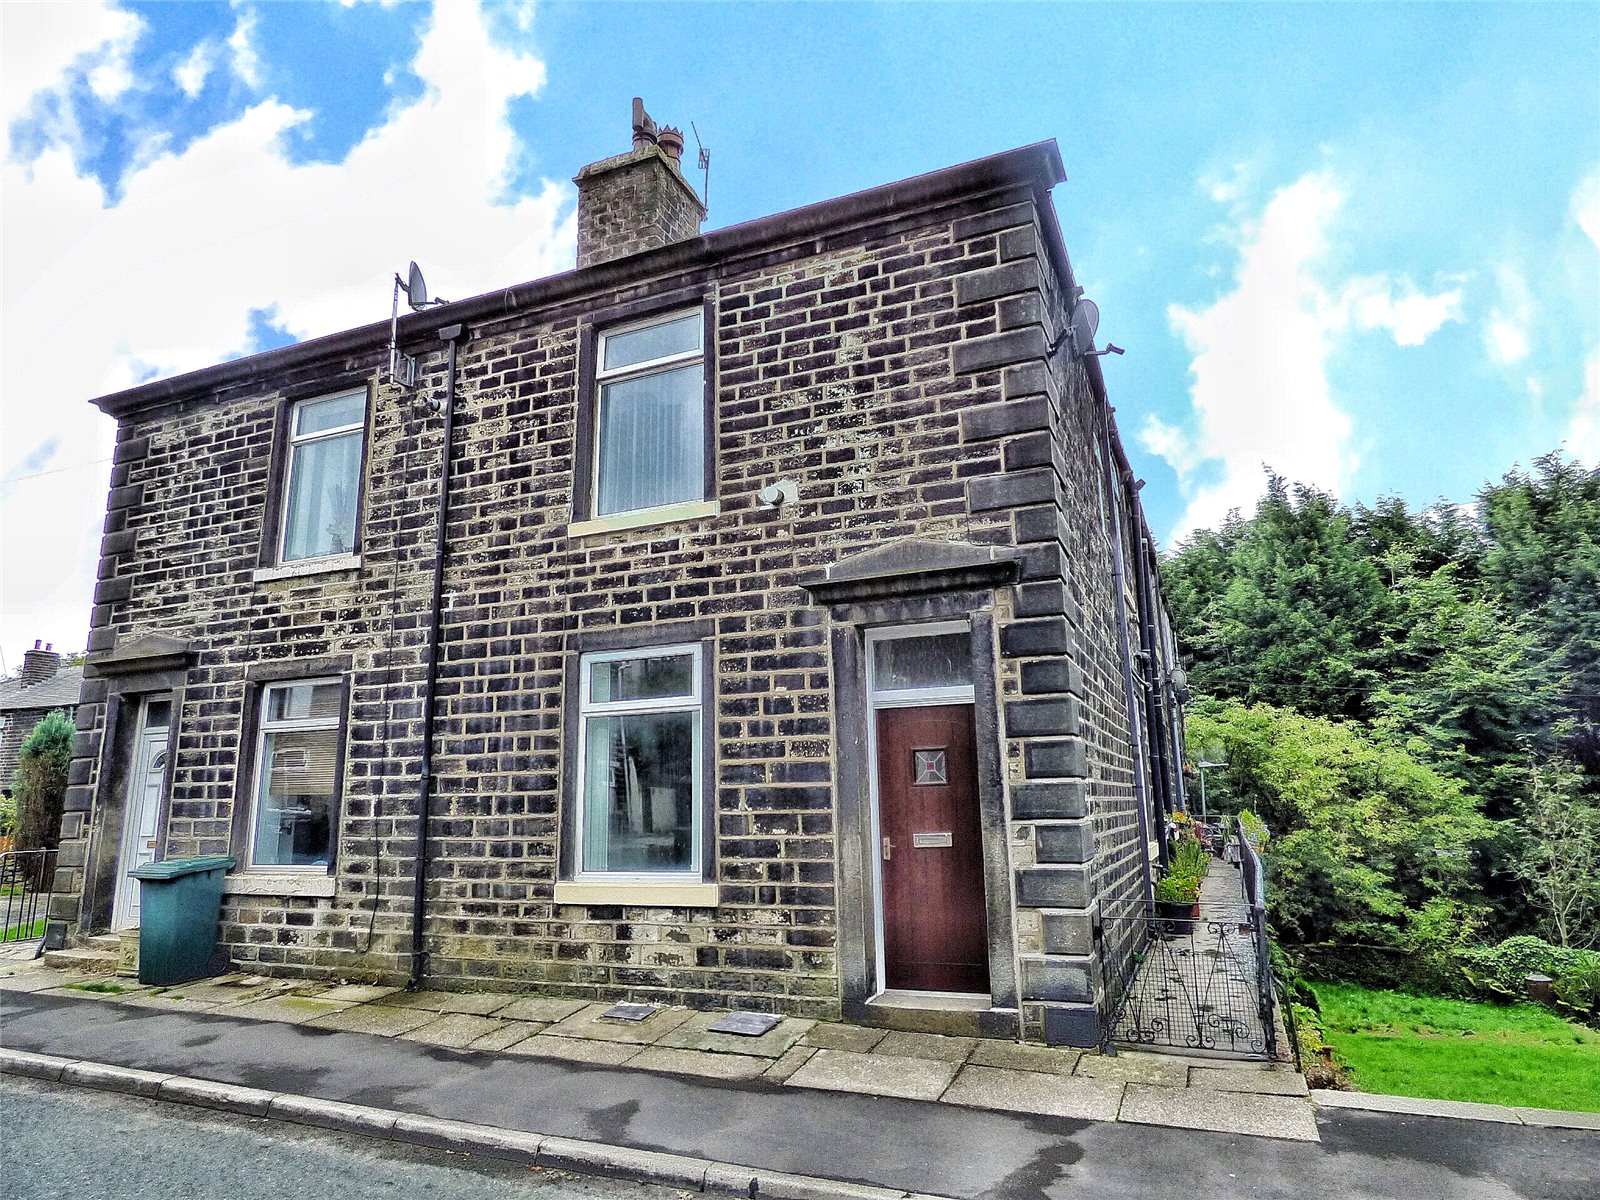 2 Bedrooms Terraced House for sale in Market Street, Shawforth, Rochdale, Lancashire, OL12